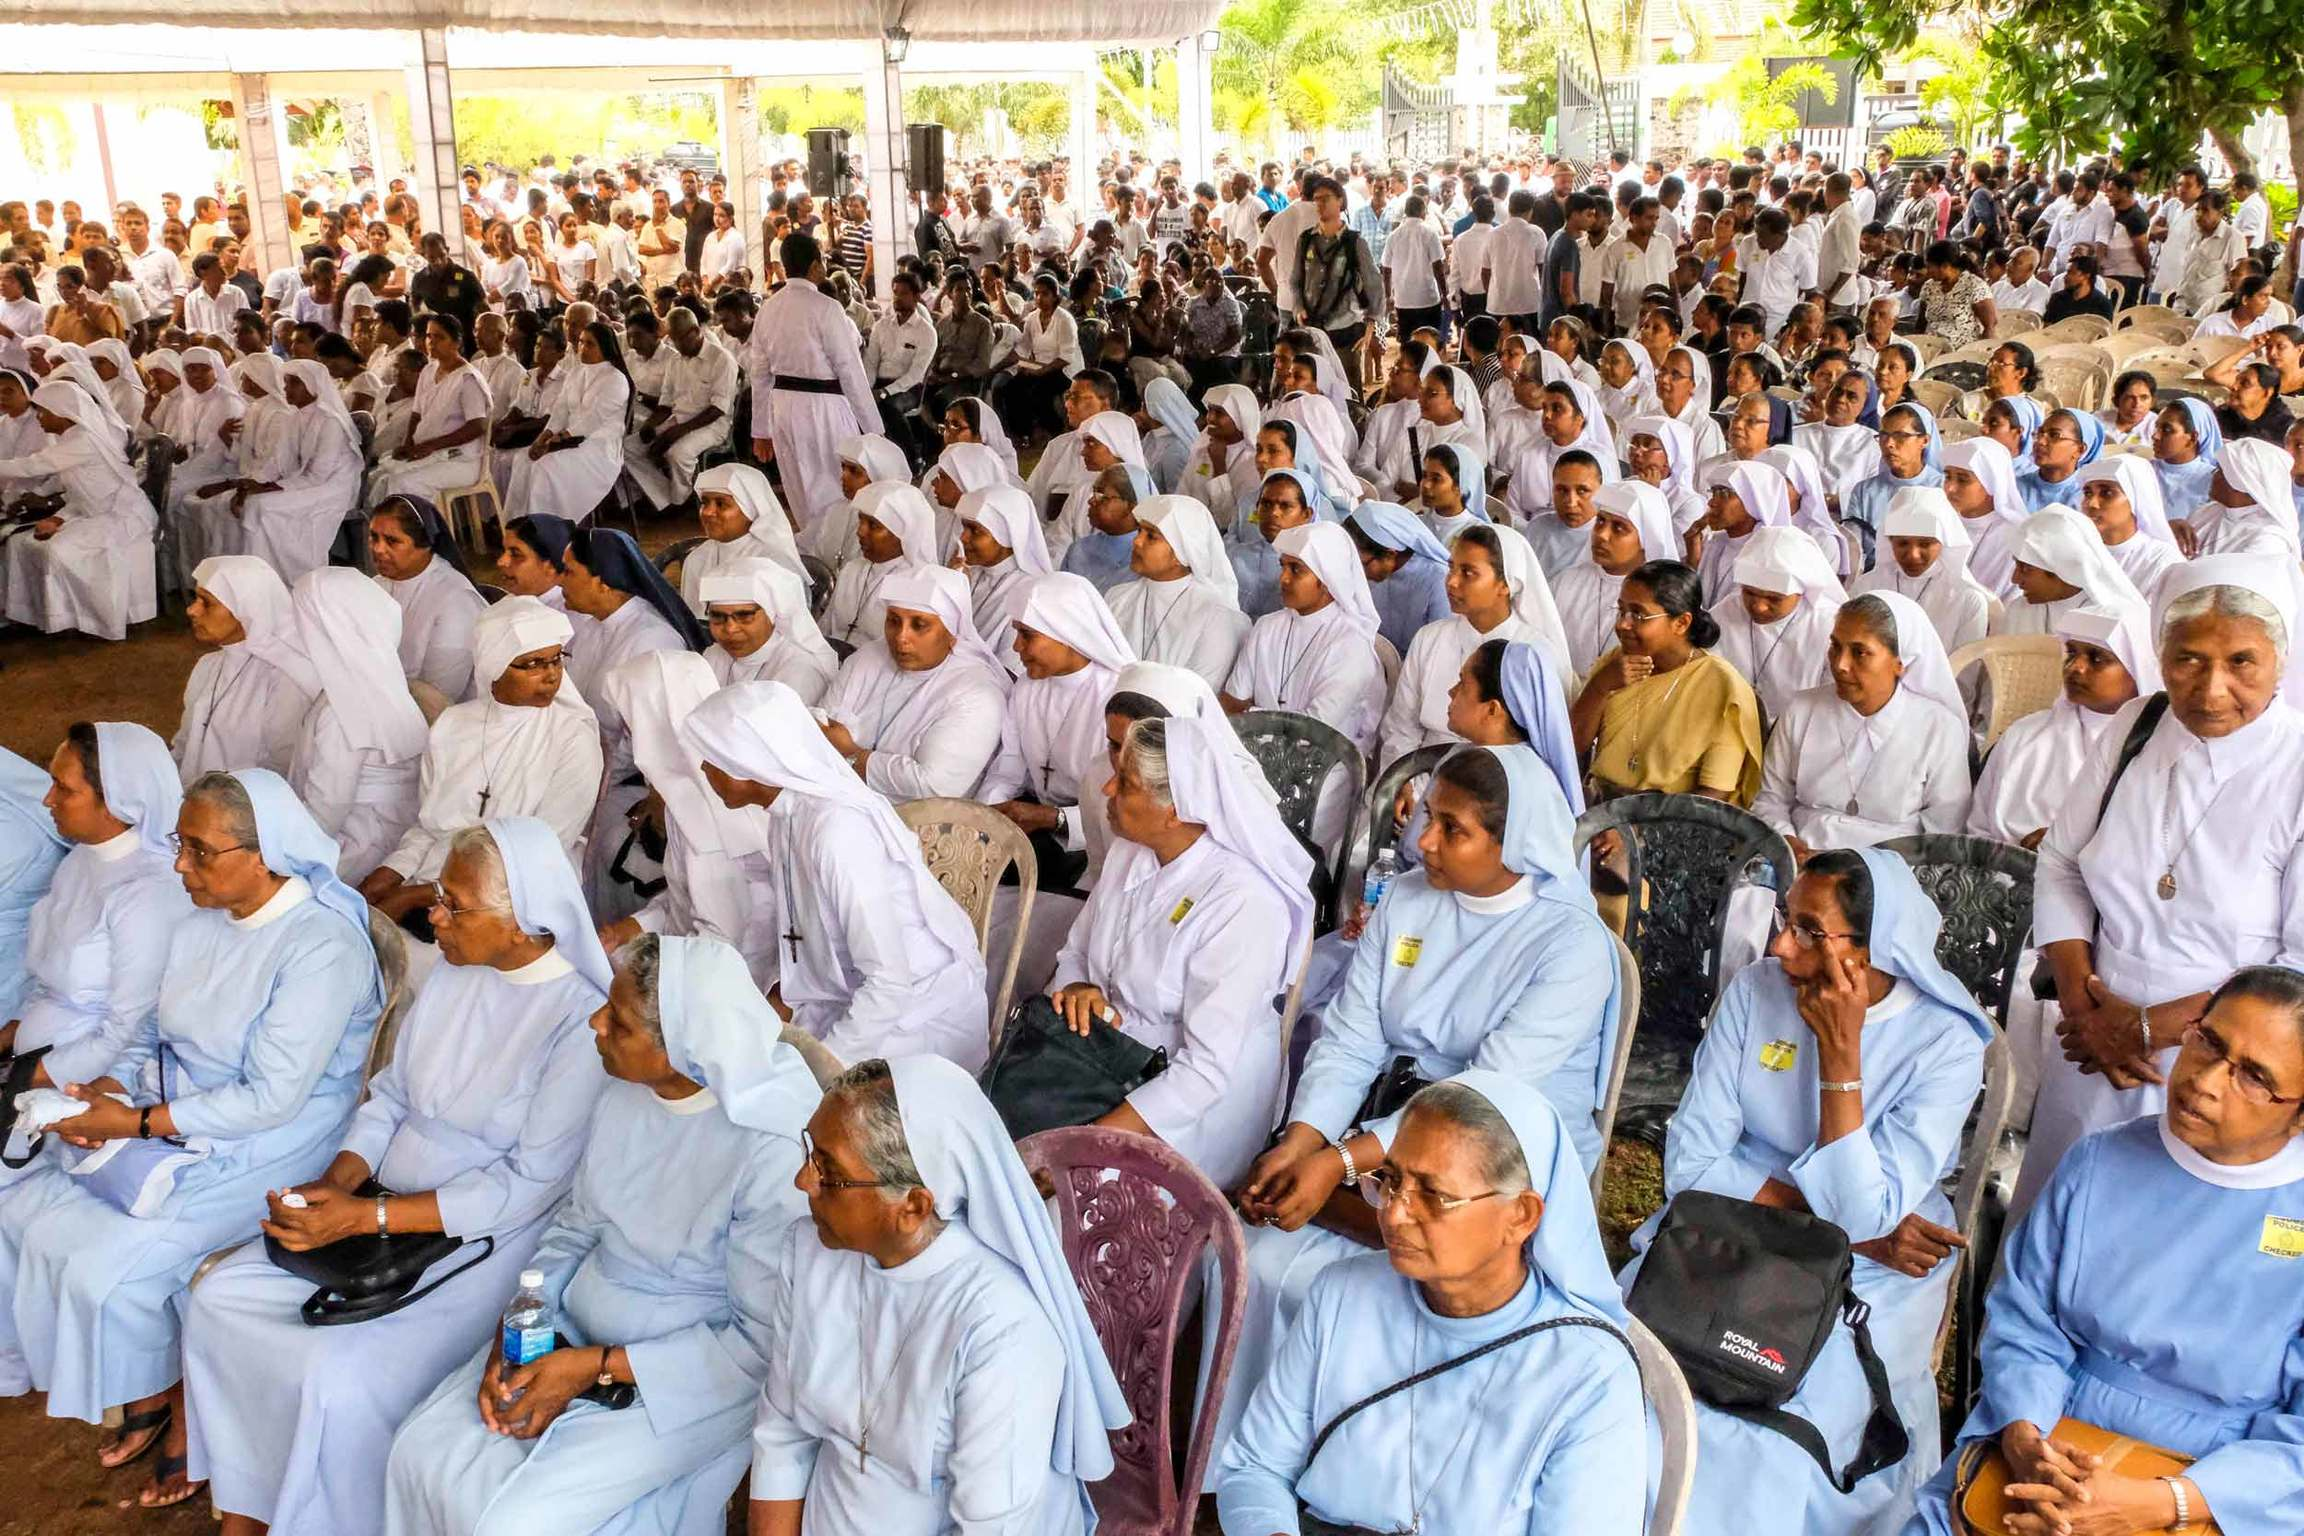 Nuns and other worshippers sit under a large tent